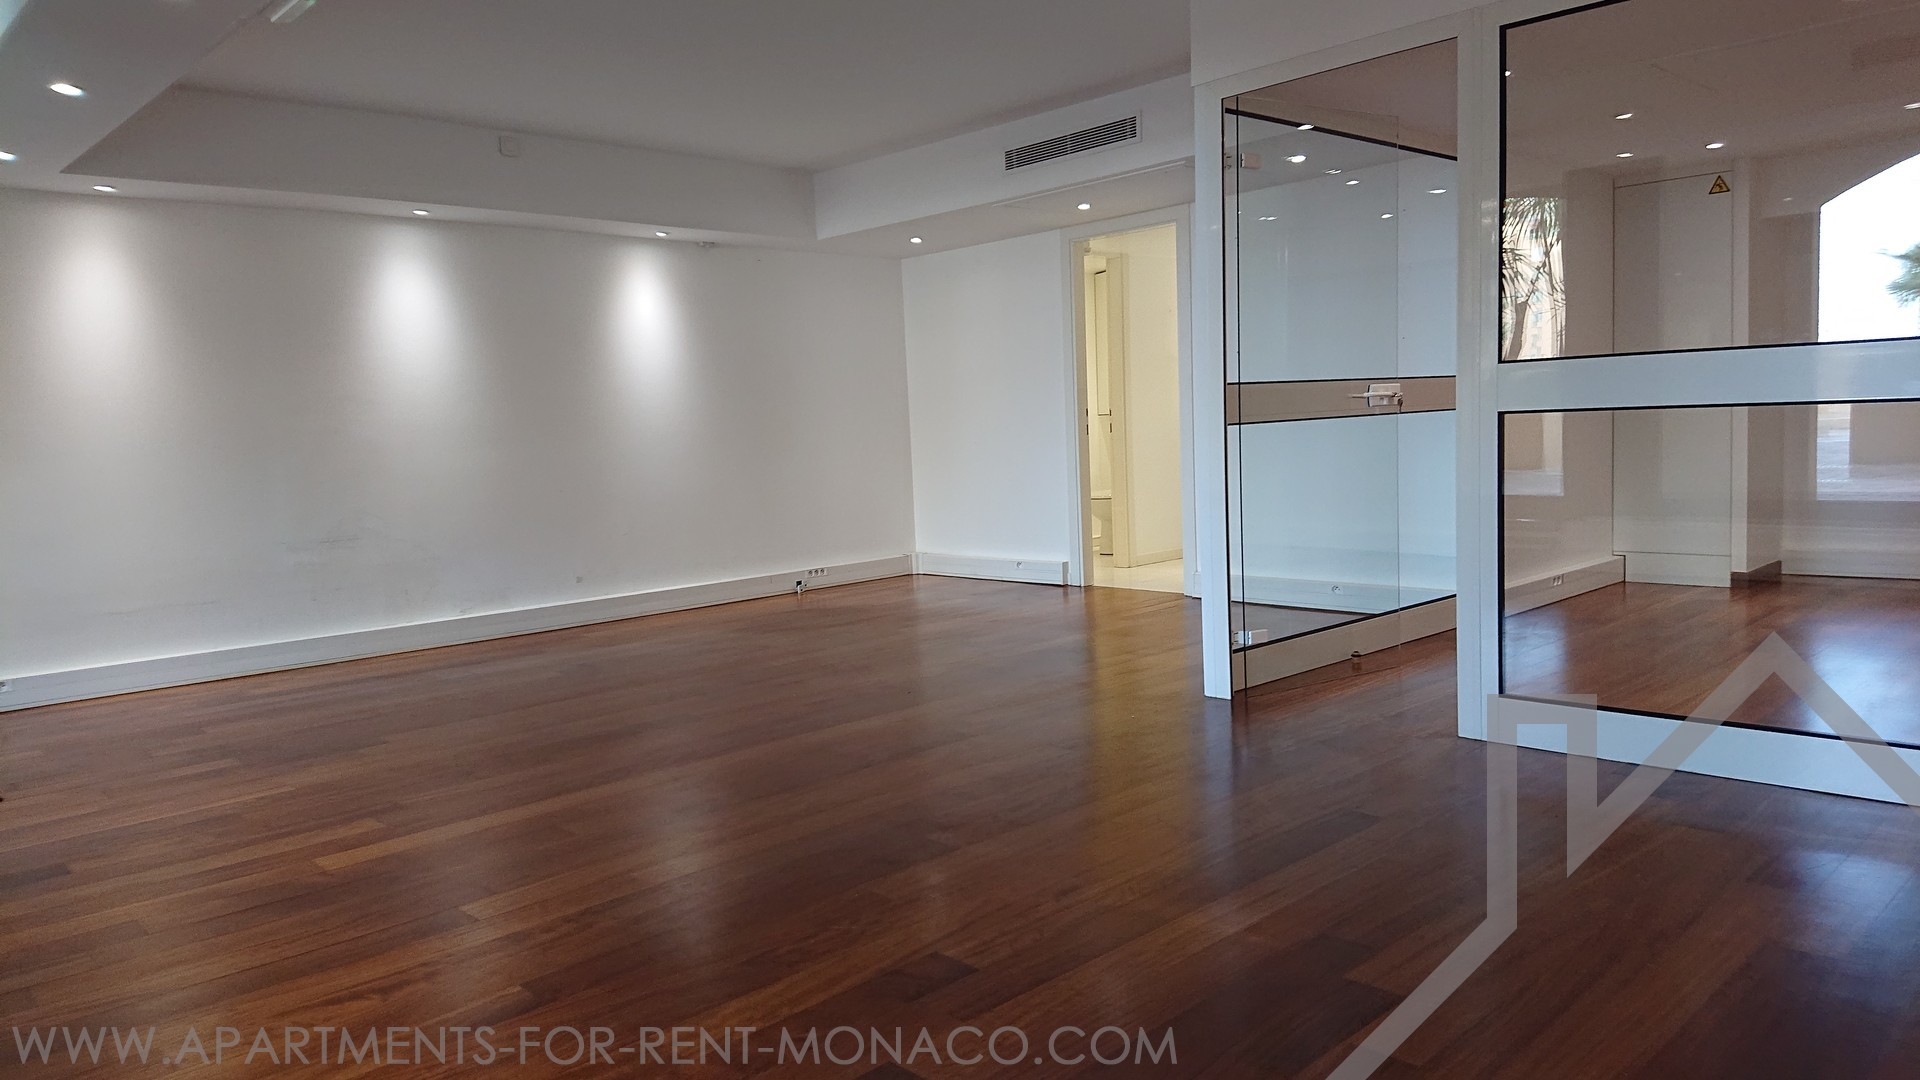 Office - Apartments for rent in Monaco